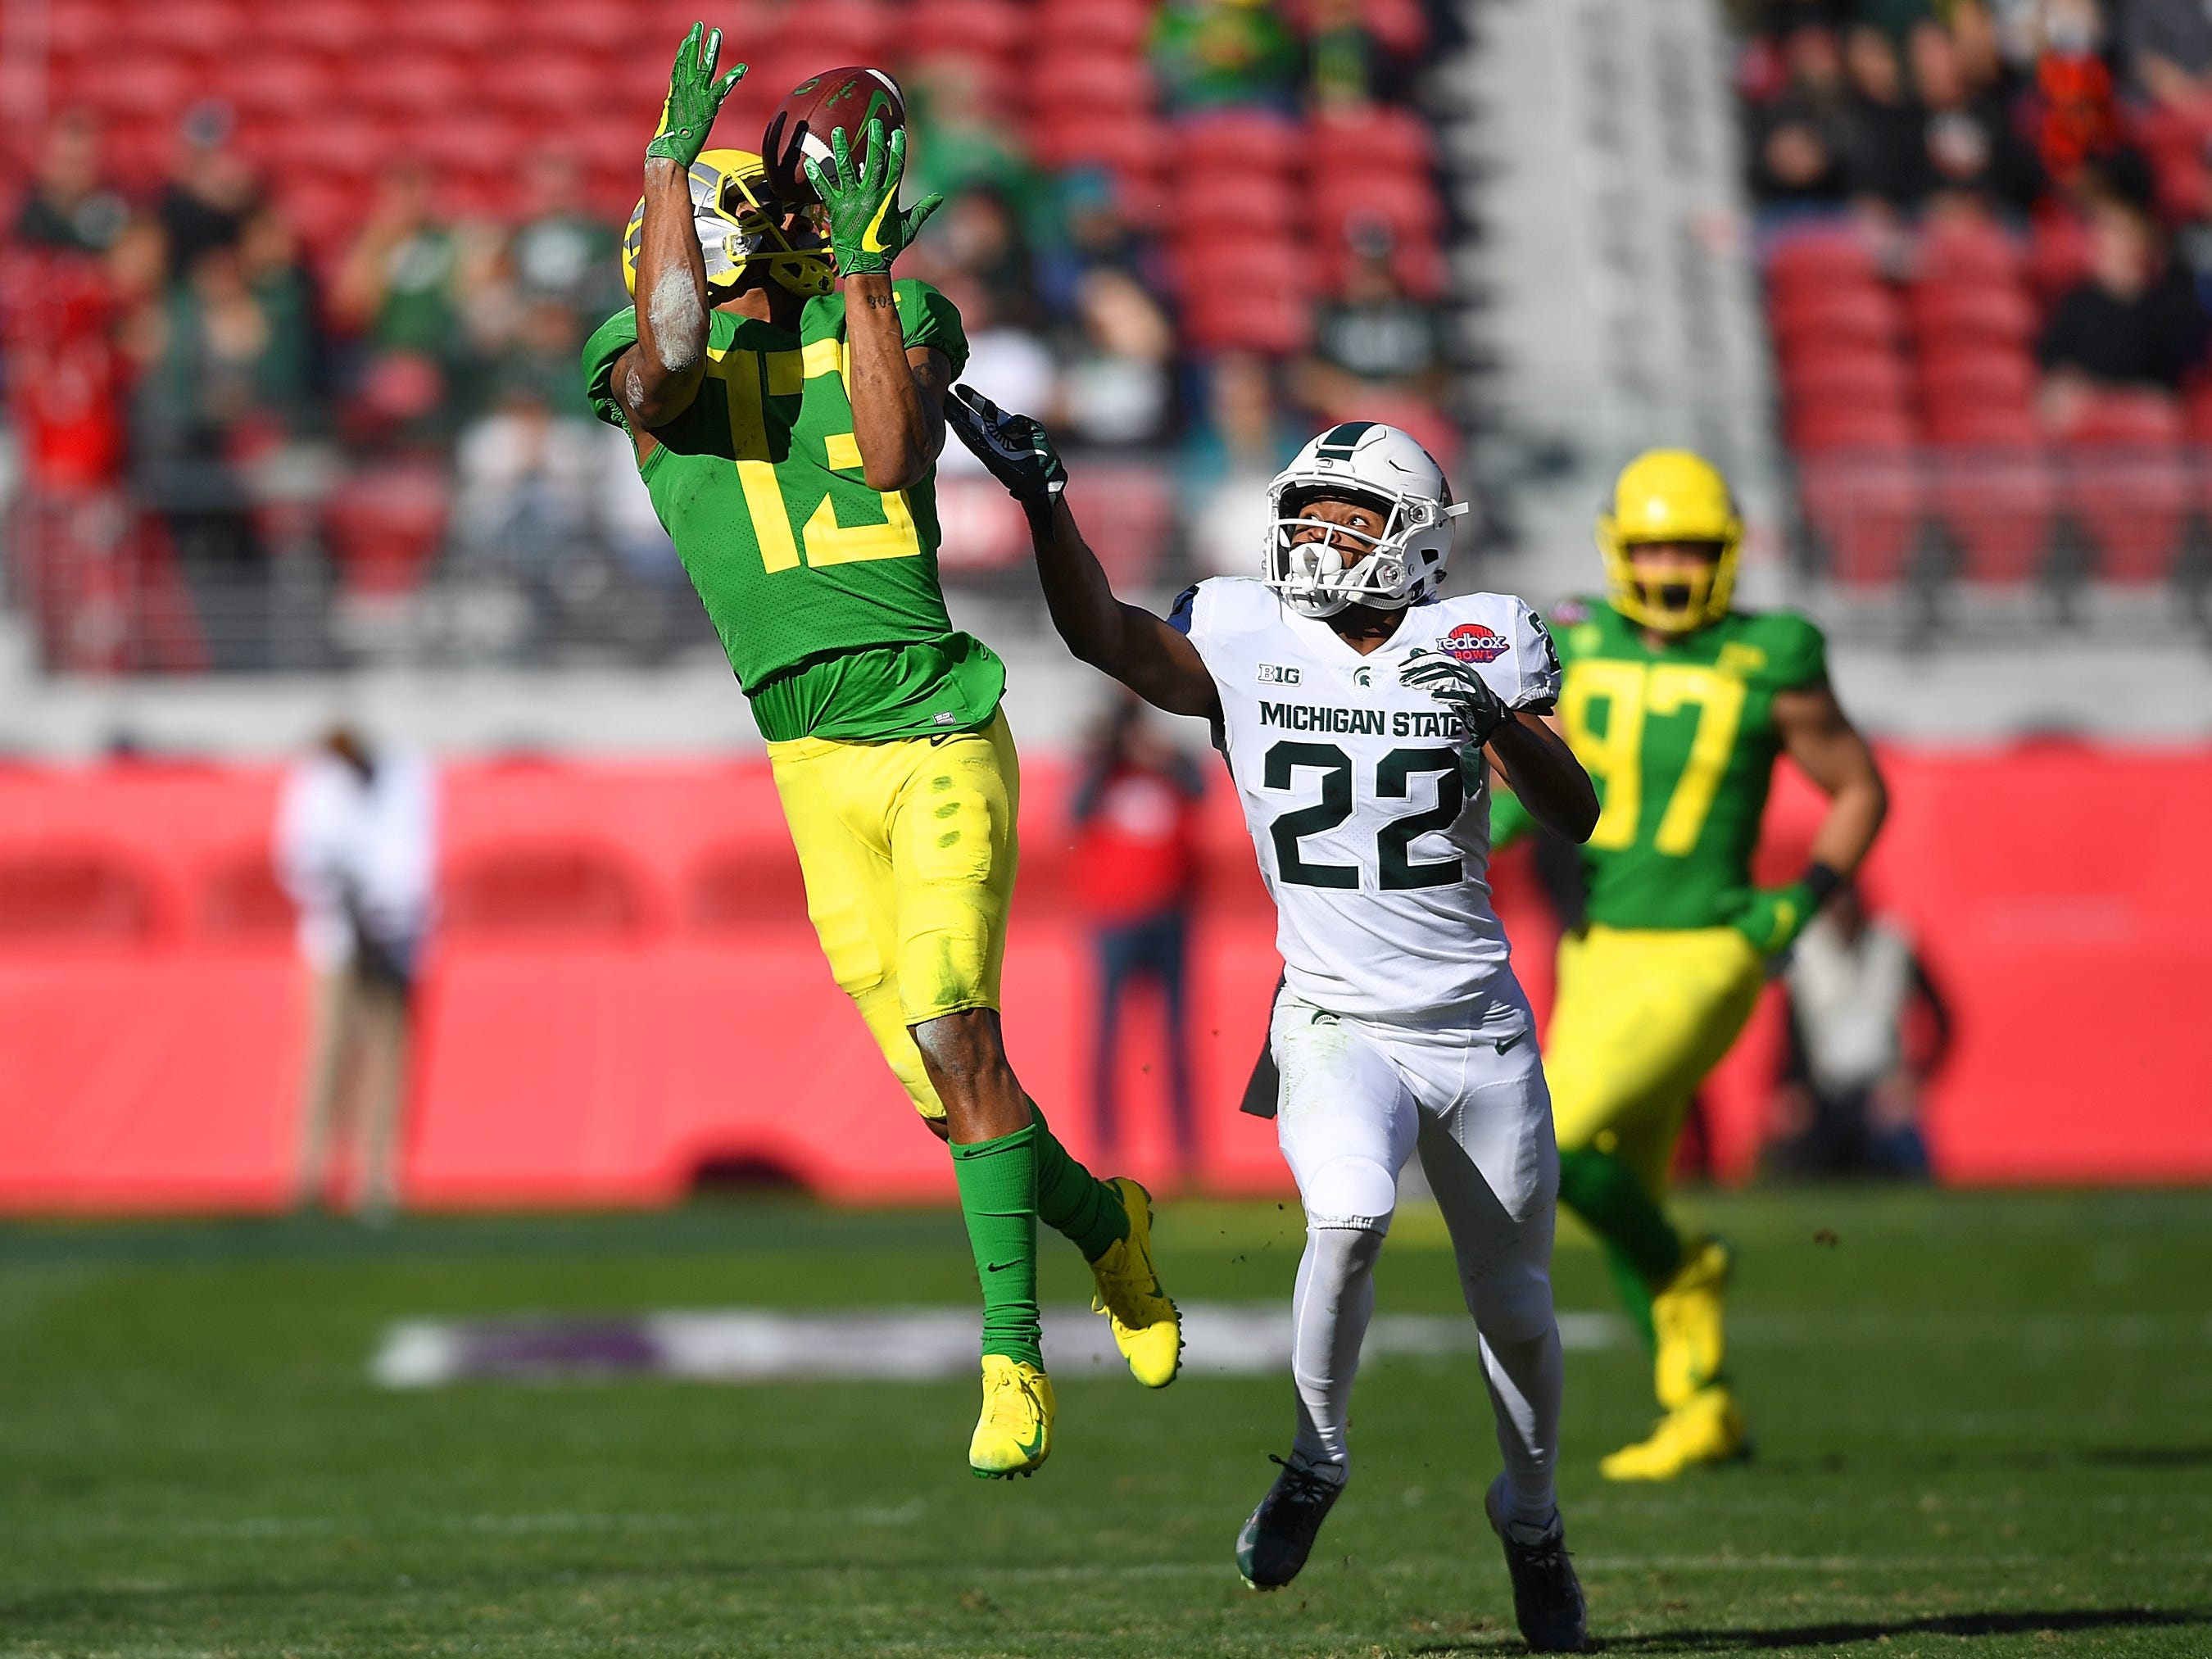 Dillon Mitchell #13 of the Oregon Ducks watches the ball bounce off his hands for an incomplete pass against the Michigan State Spartans during the first half of the Redbox Bowl at Levi's Stadium on December 31, 2018 in Santa Clara, California.